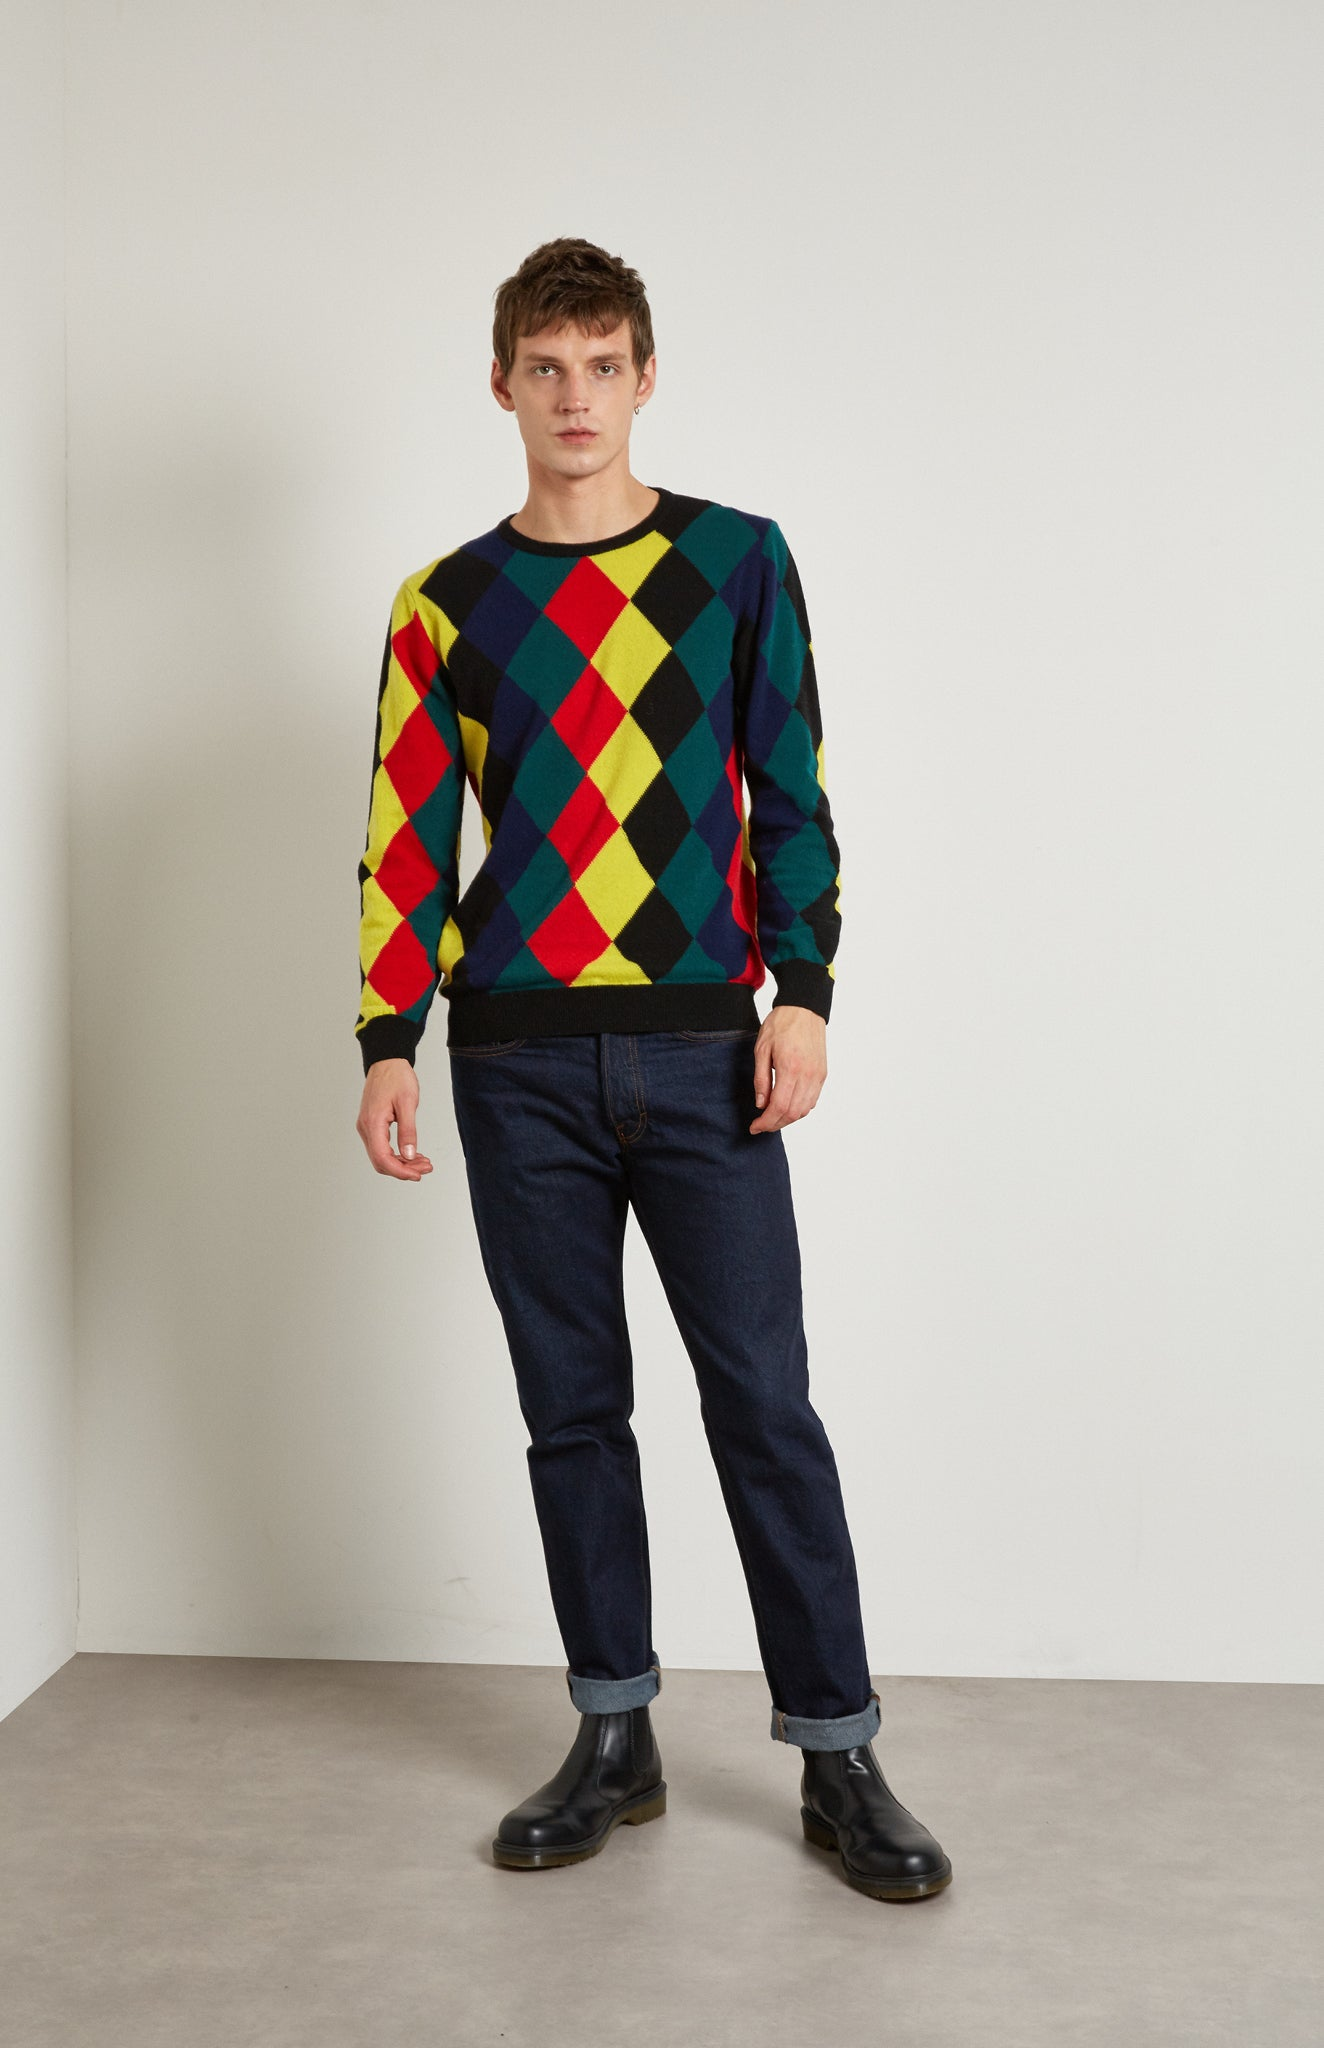 Pringle Reissued Unisex Harlequin Argyle Sweater in multi colours on men's model